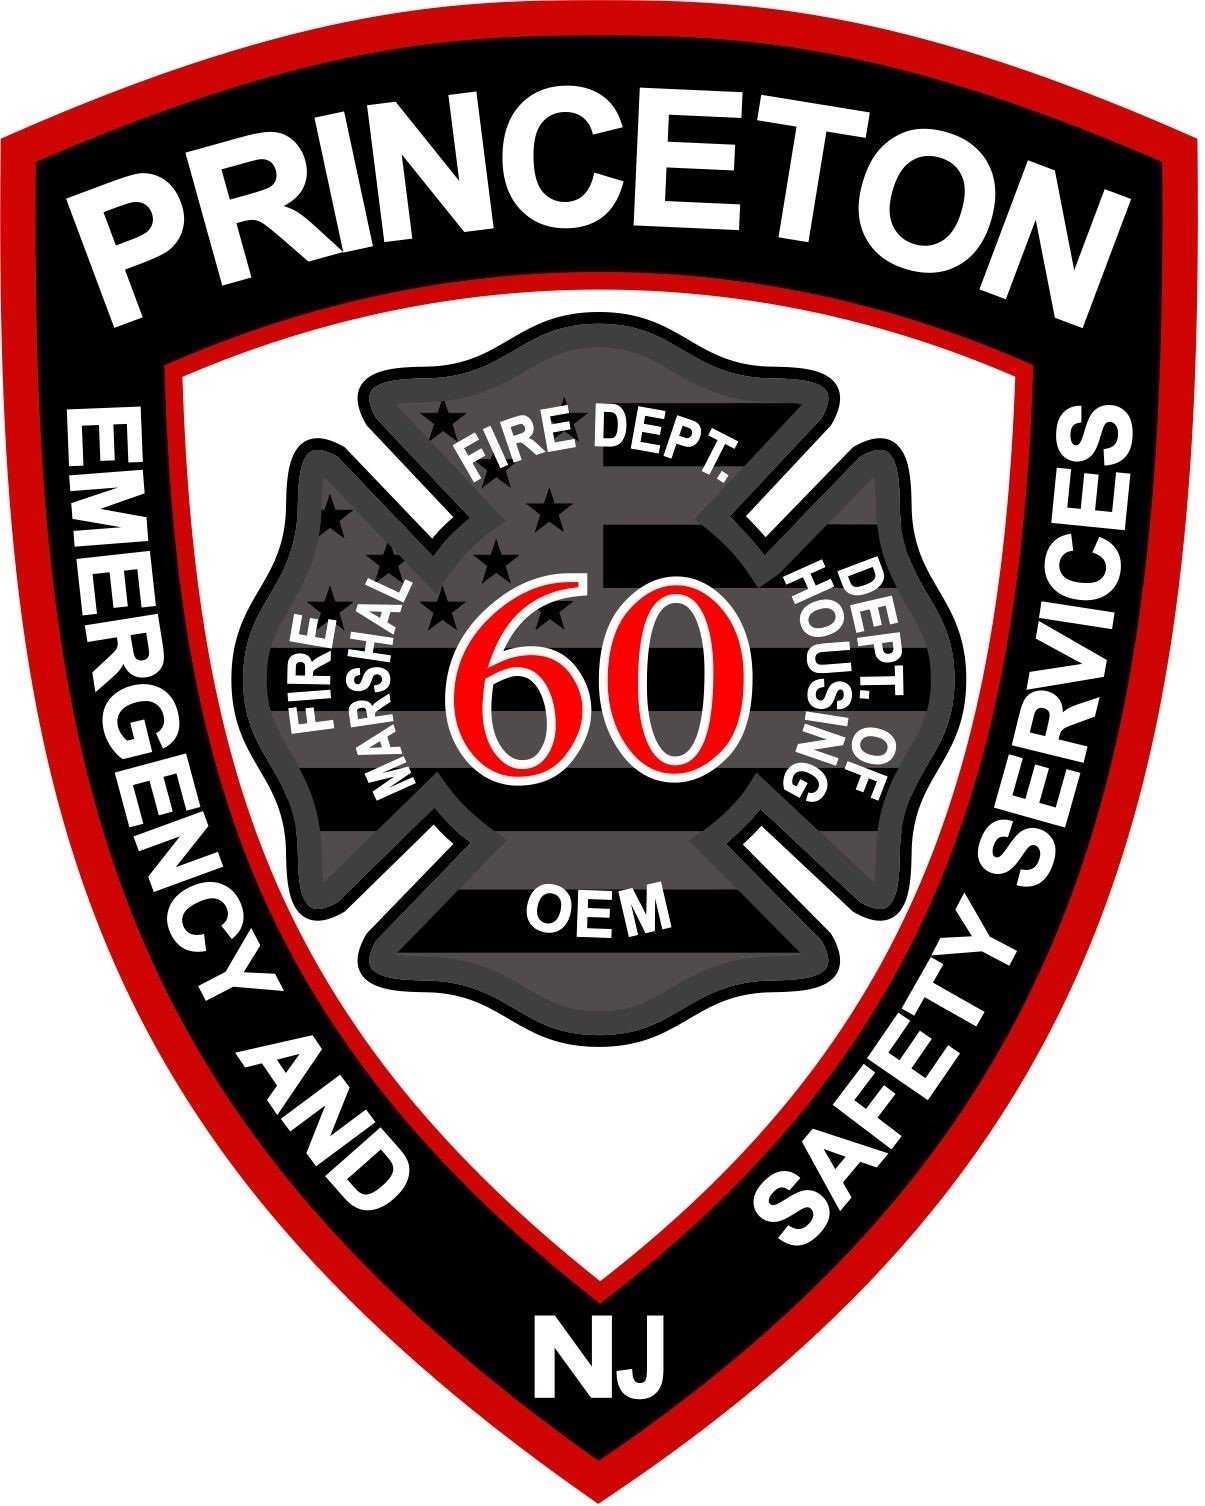 Princeton Department of Emergency and Safety Services Bureau of Fire Safety